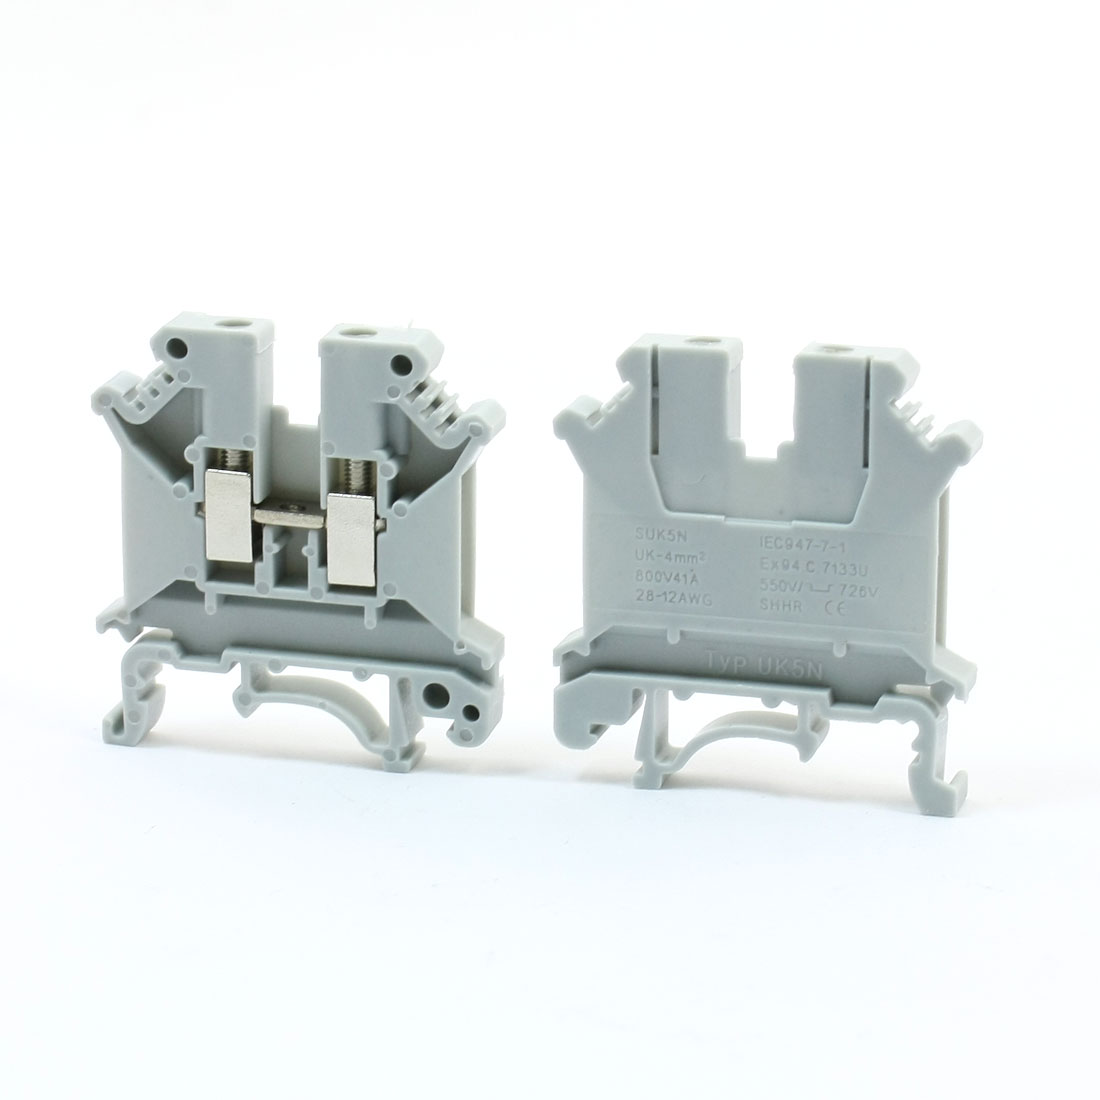 28-10AWG Wire Range Side Entry Screw Terminal Block Connector UK5N 2 Pcs